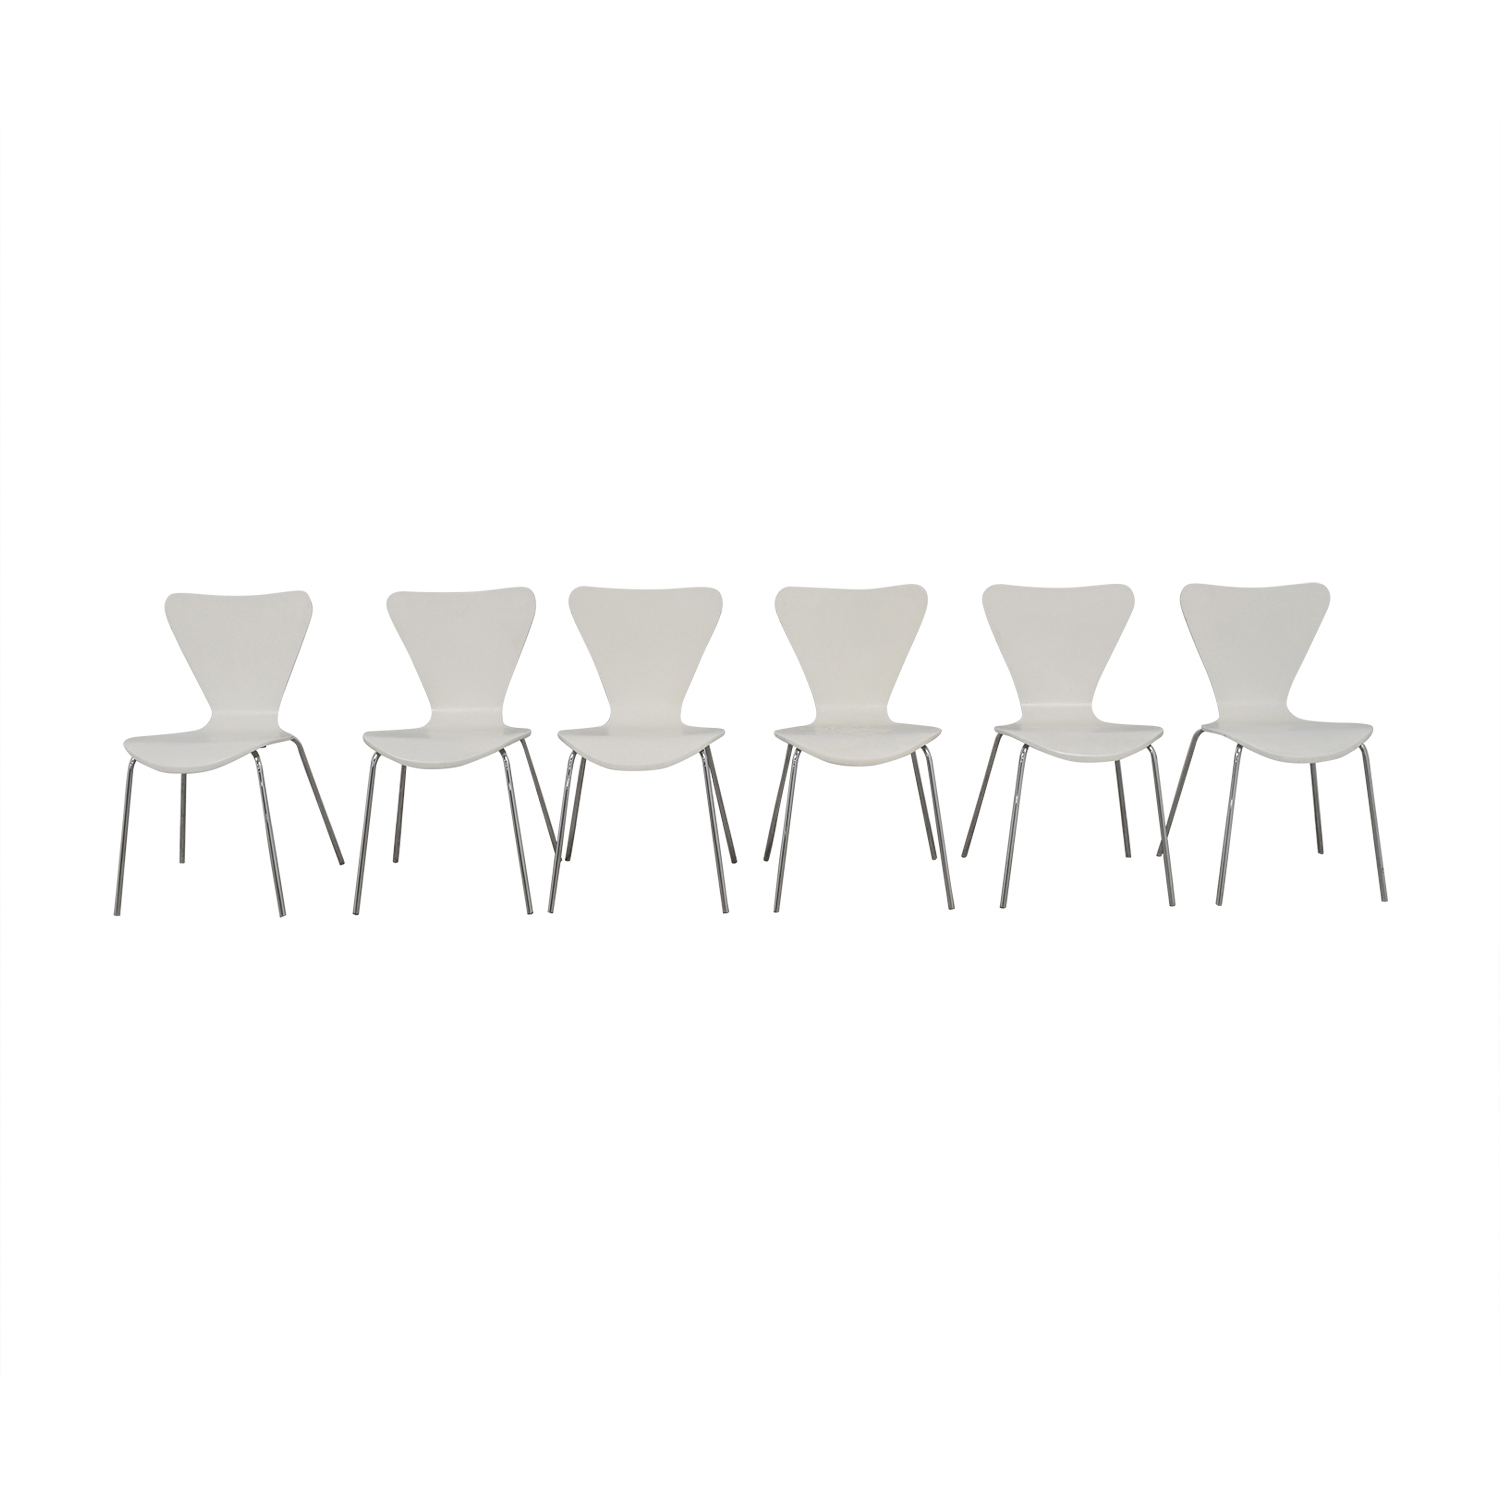 shop Room & Board Room & Board White and Chrome Chairs online